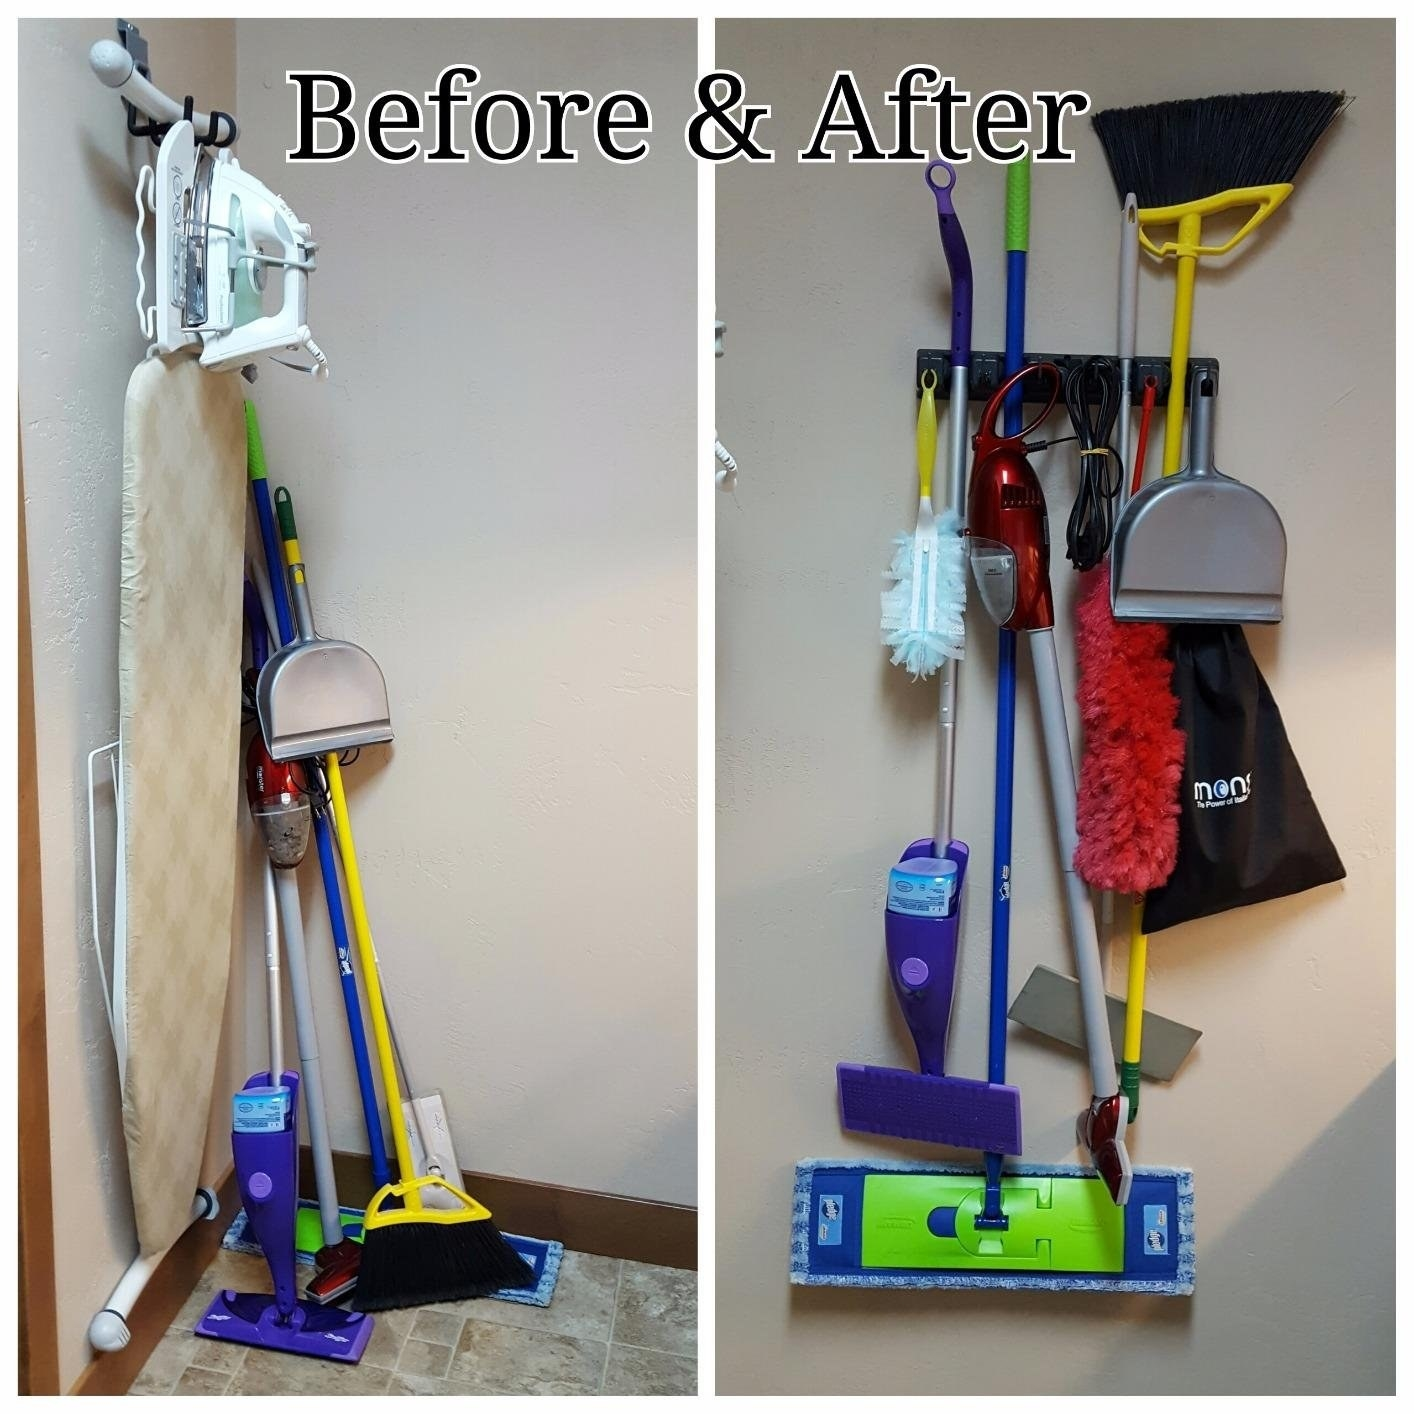 Before and after of brooms on the floor and then neatly hung on the wall with the mounted organizer